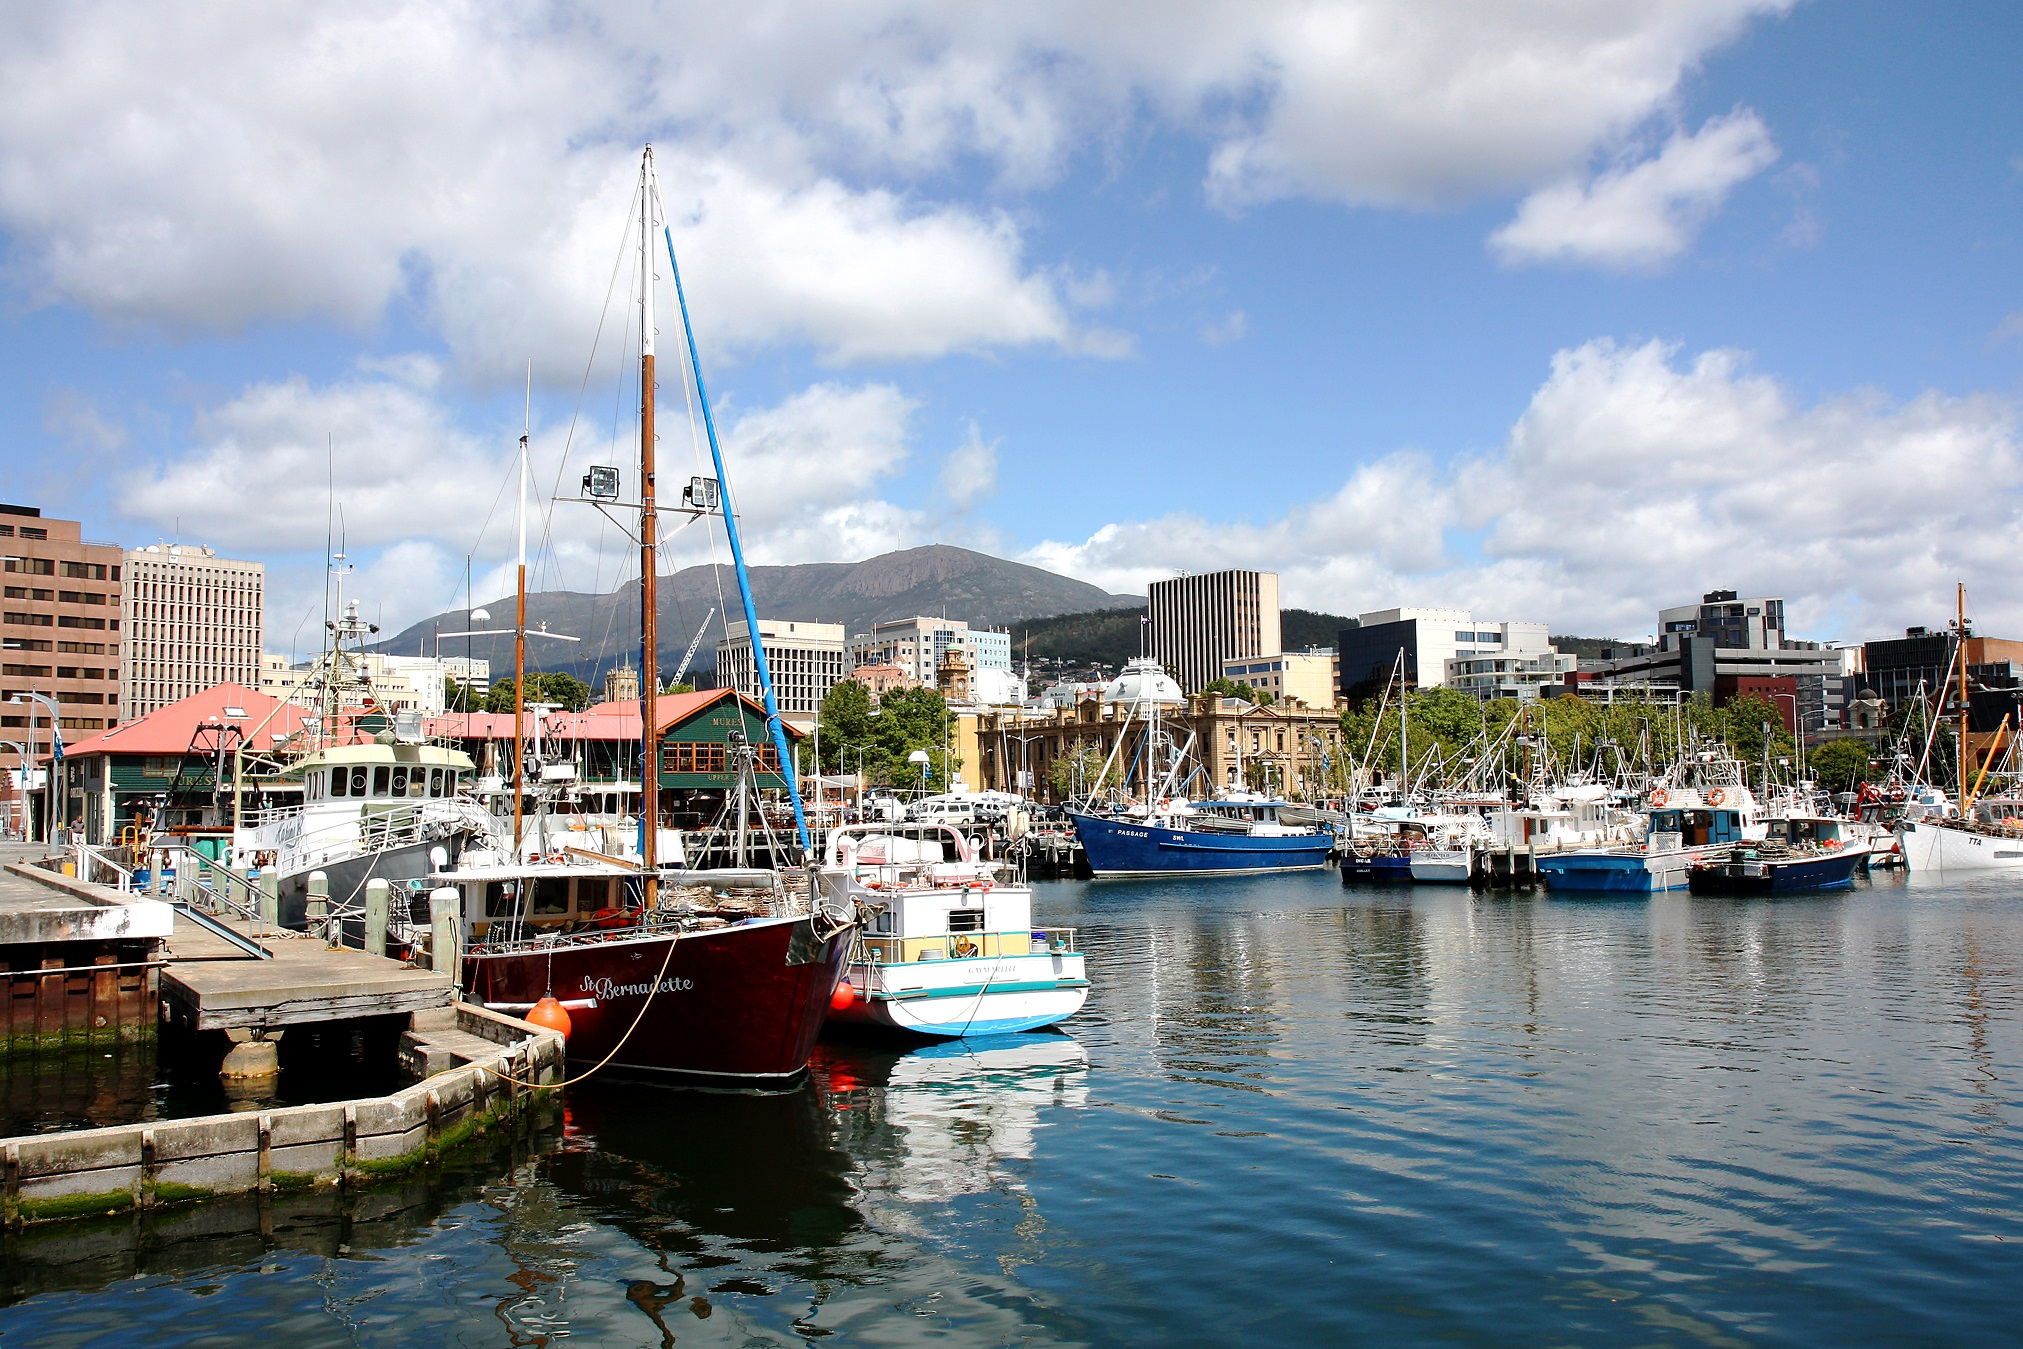 tasmania tours, tours of tasmania, tasmian tours for seniors, seniors tours of tasmania